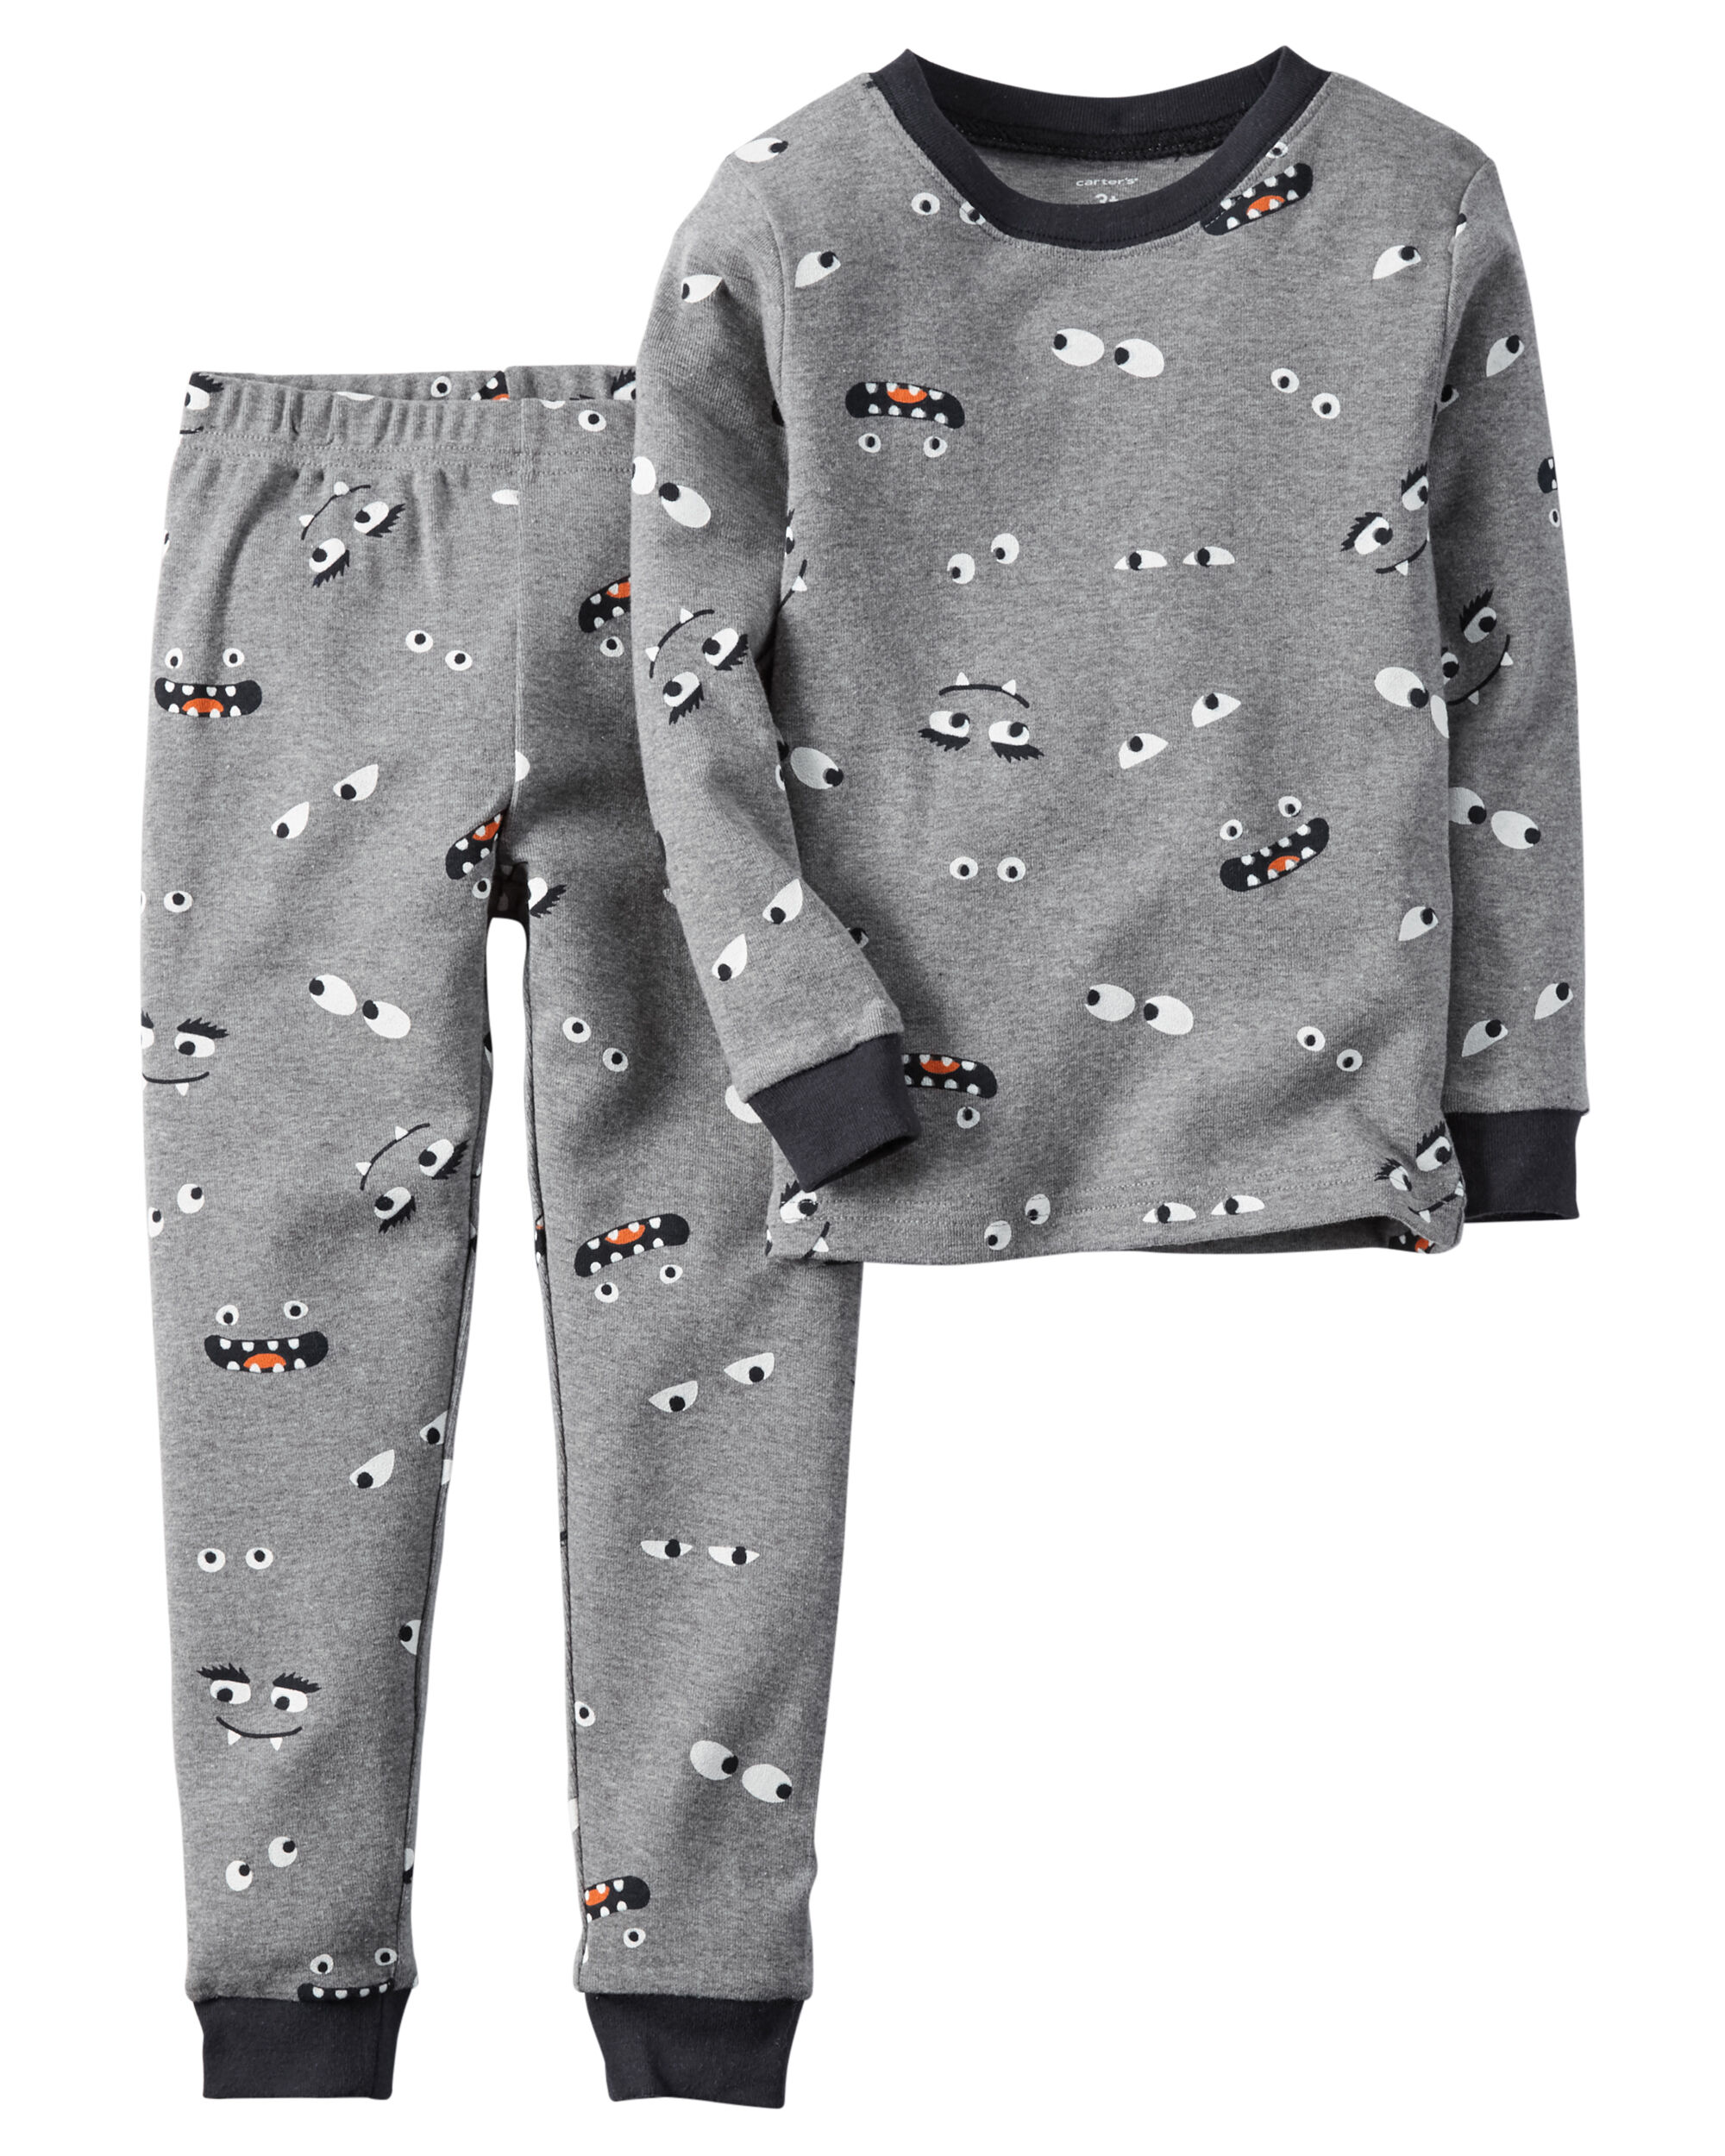 f45768029 2-Piece Glow-In-The-Dark Snug Fit Cotton Halloween PJs